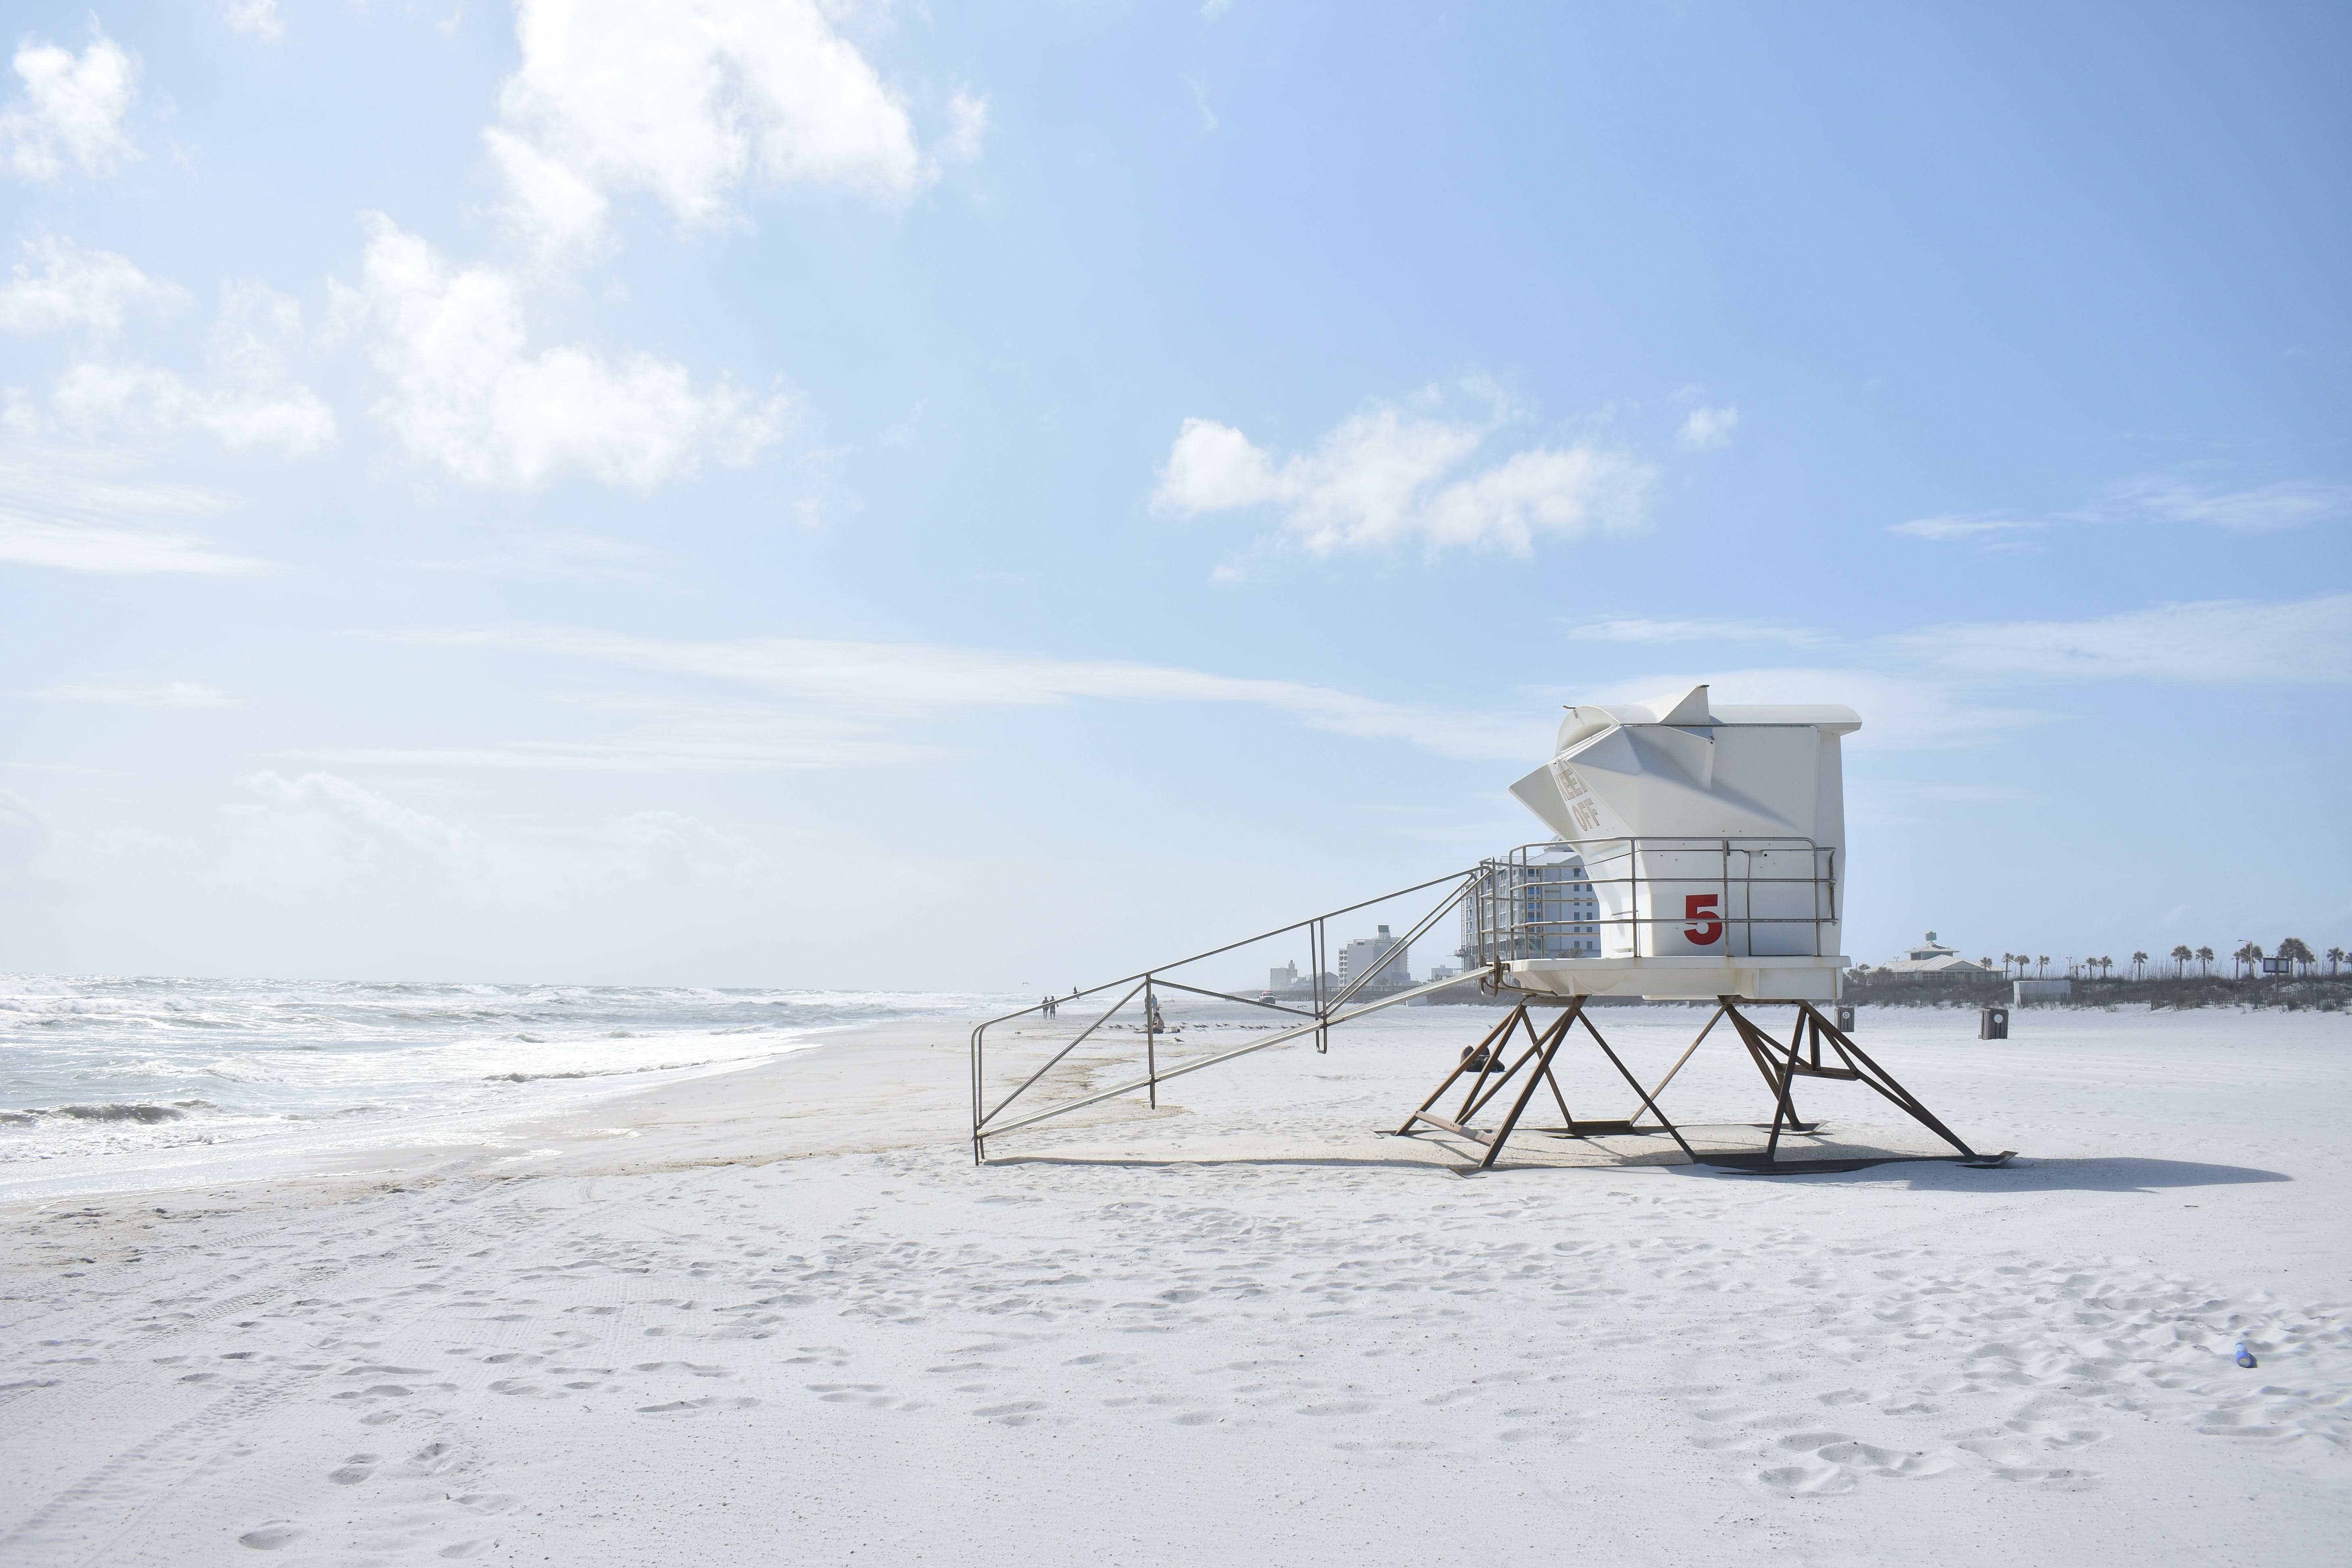 Photography of White Lifeguard House on Beach Resort